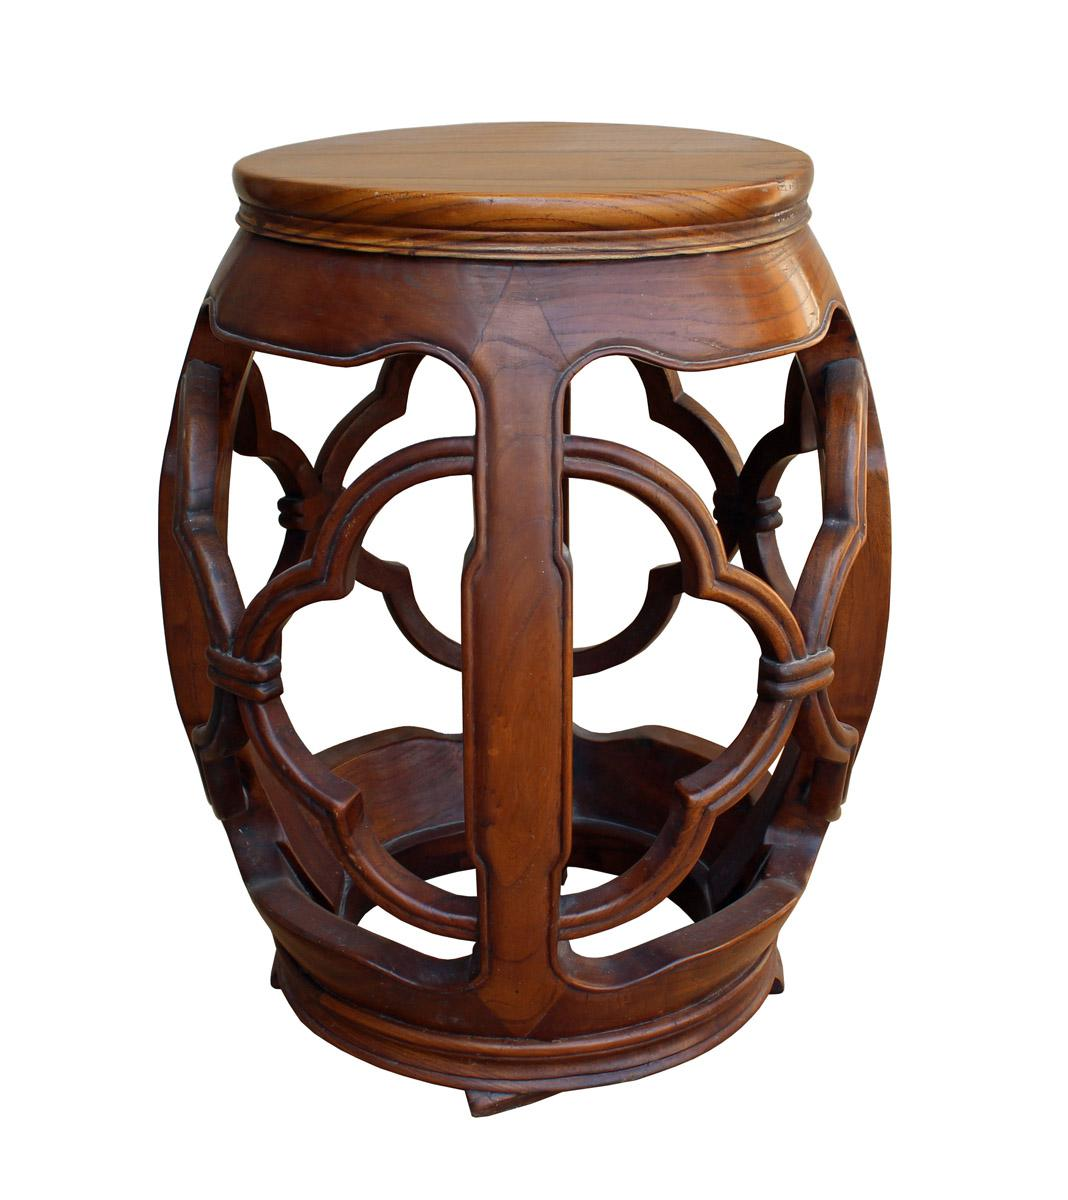 Chinese Wood Drum Stool - Image 2 of 5  sc 1 st  Chairish & Chinese Wood Drum Stool | Chairish islam-shia.org